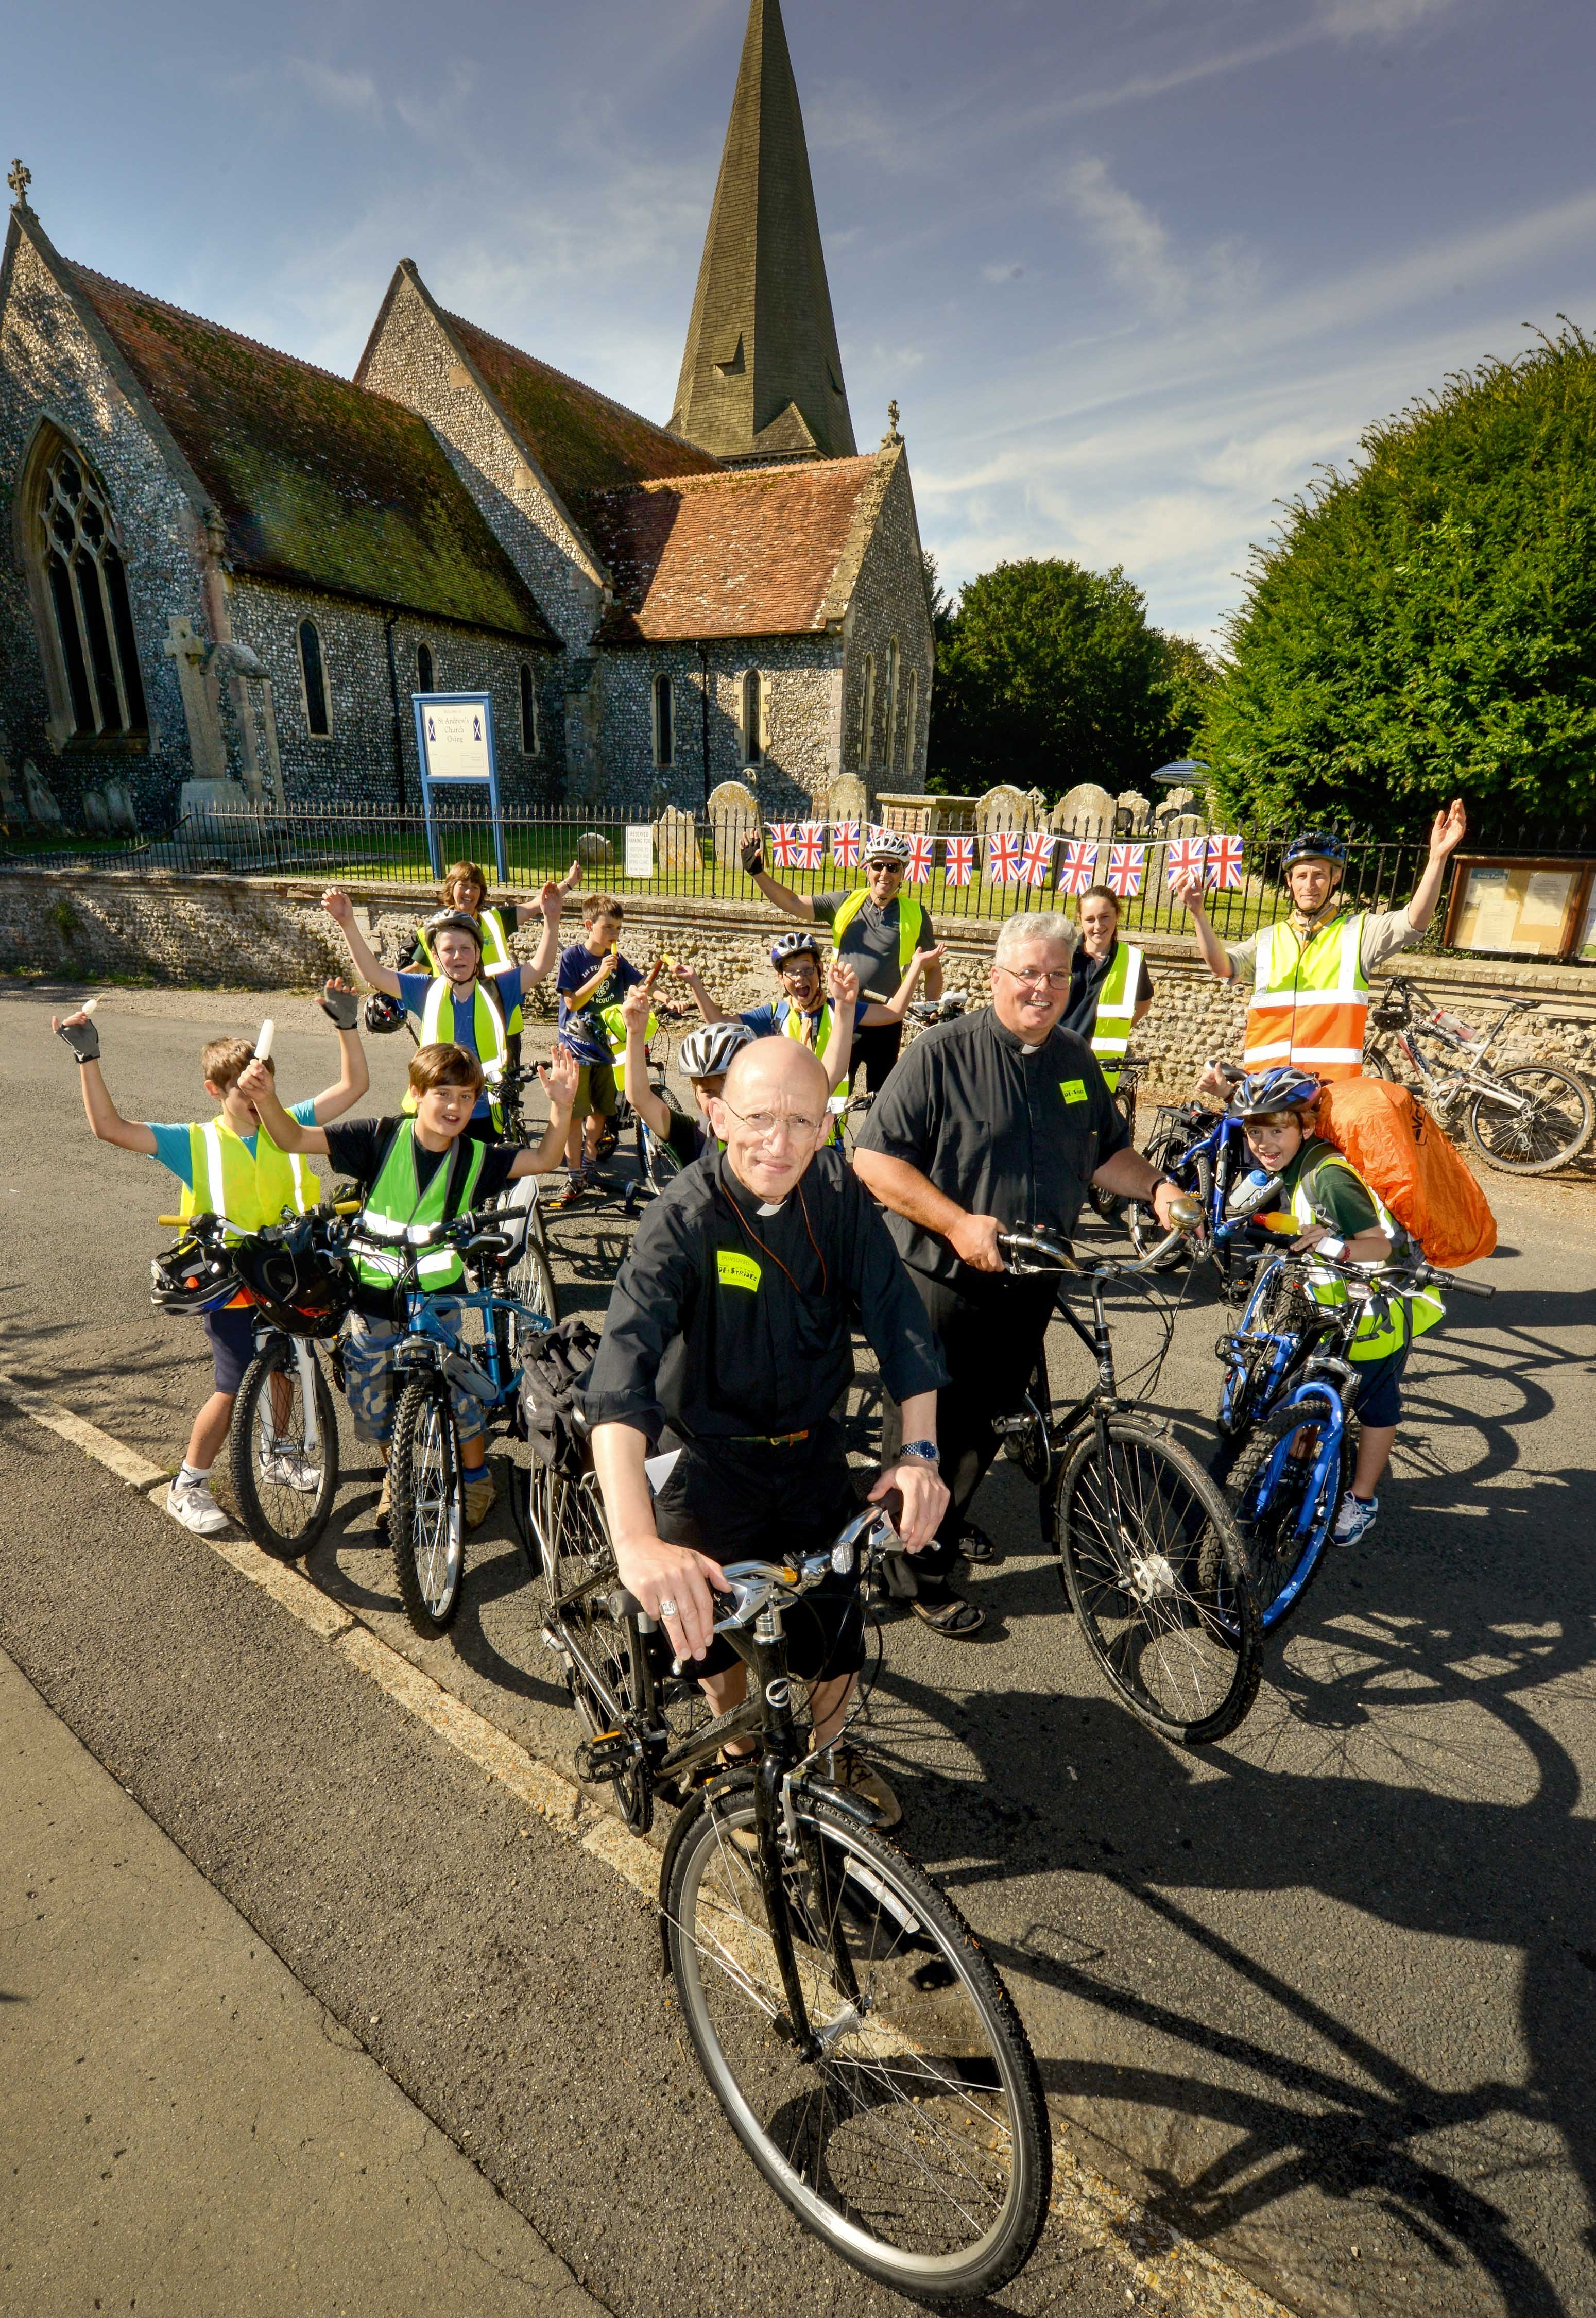 Bishop of Chichester Dr. Martin Warner and his Ride+Stride team setting off in 2012